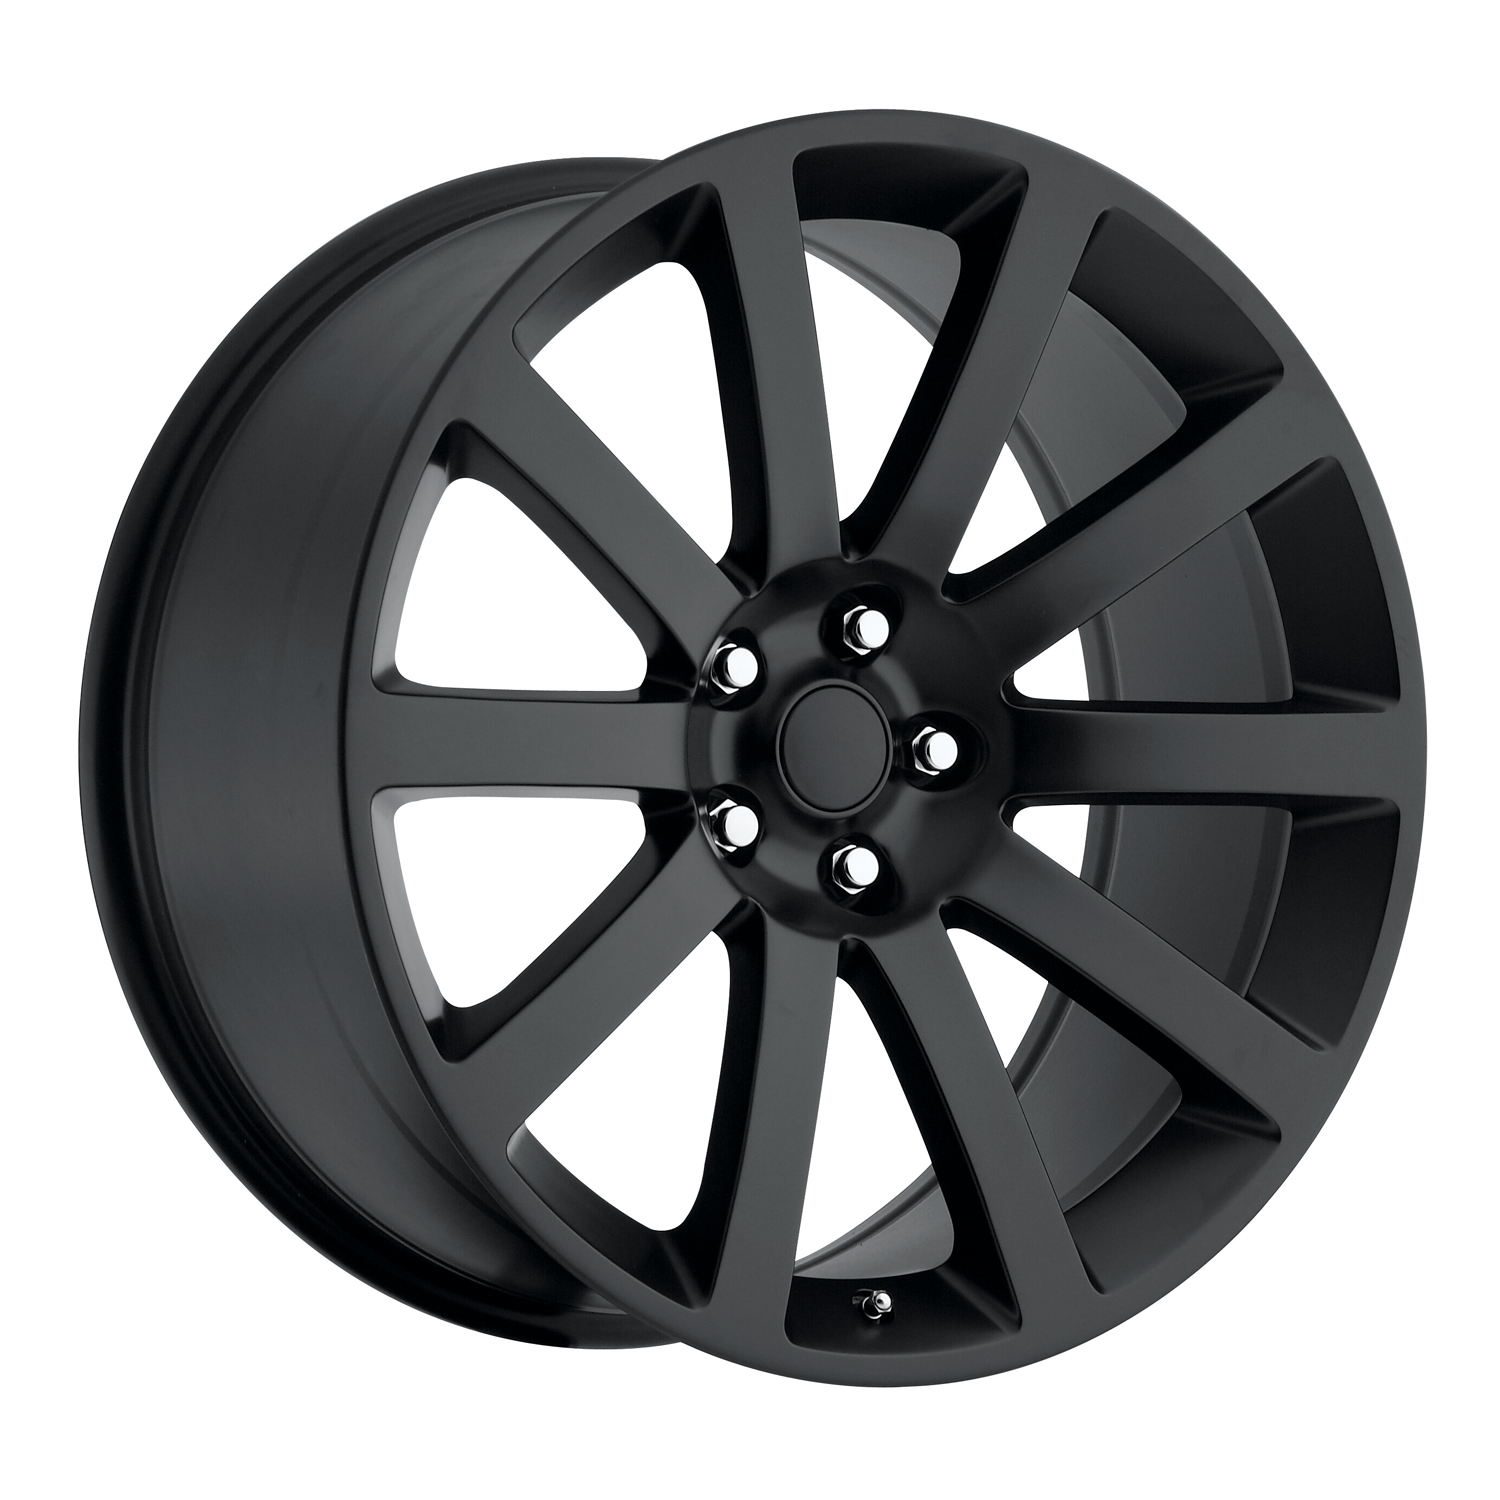 Chrysler 300C 2005-2010 20x9 5x115 +18 - SRT8 Style Wheel - Gloss Black With Cap